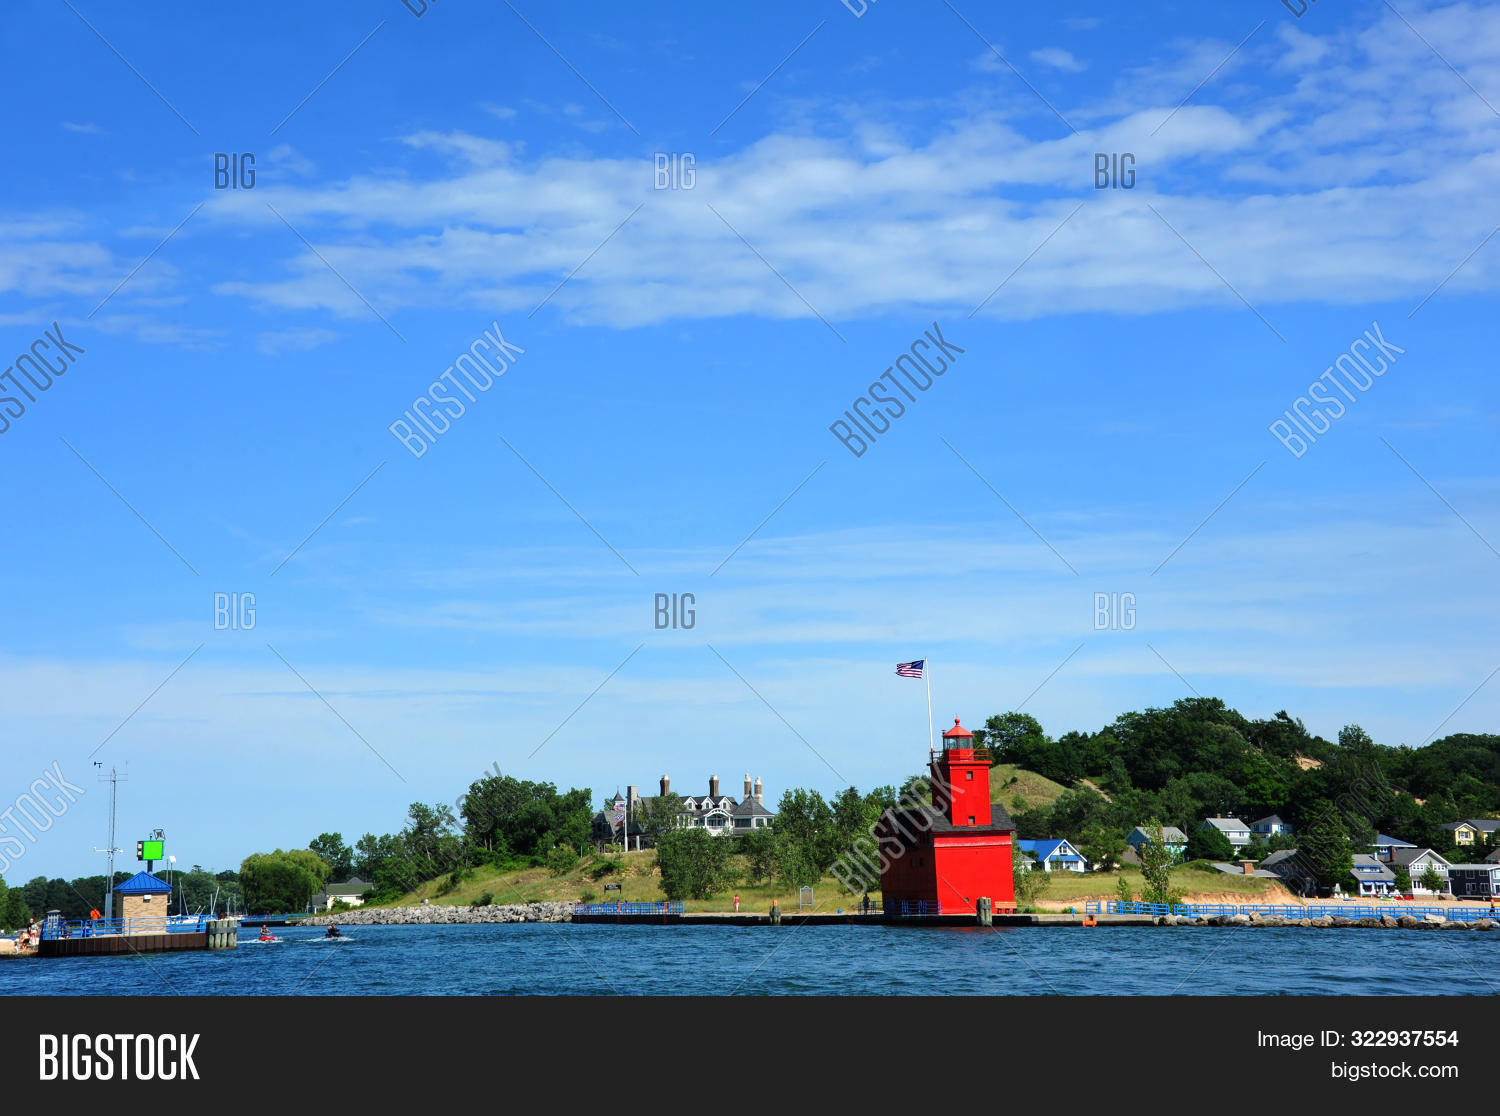 Holland,Michigan,architecture,blue,great,harbor,historic,historical,lake,light,lighthouse,red,sky,summer,sunny,tourists,visitors,water,windy